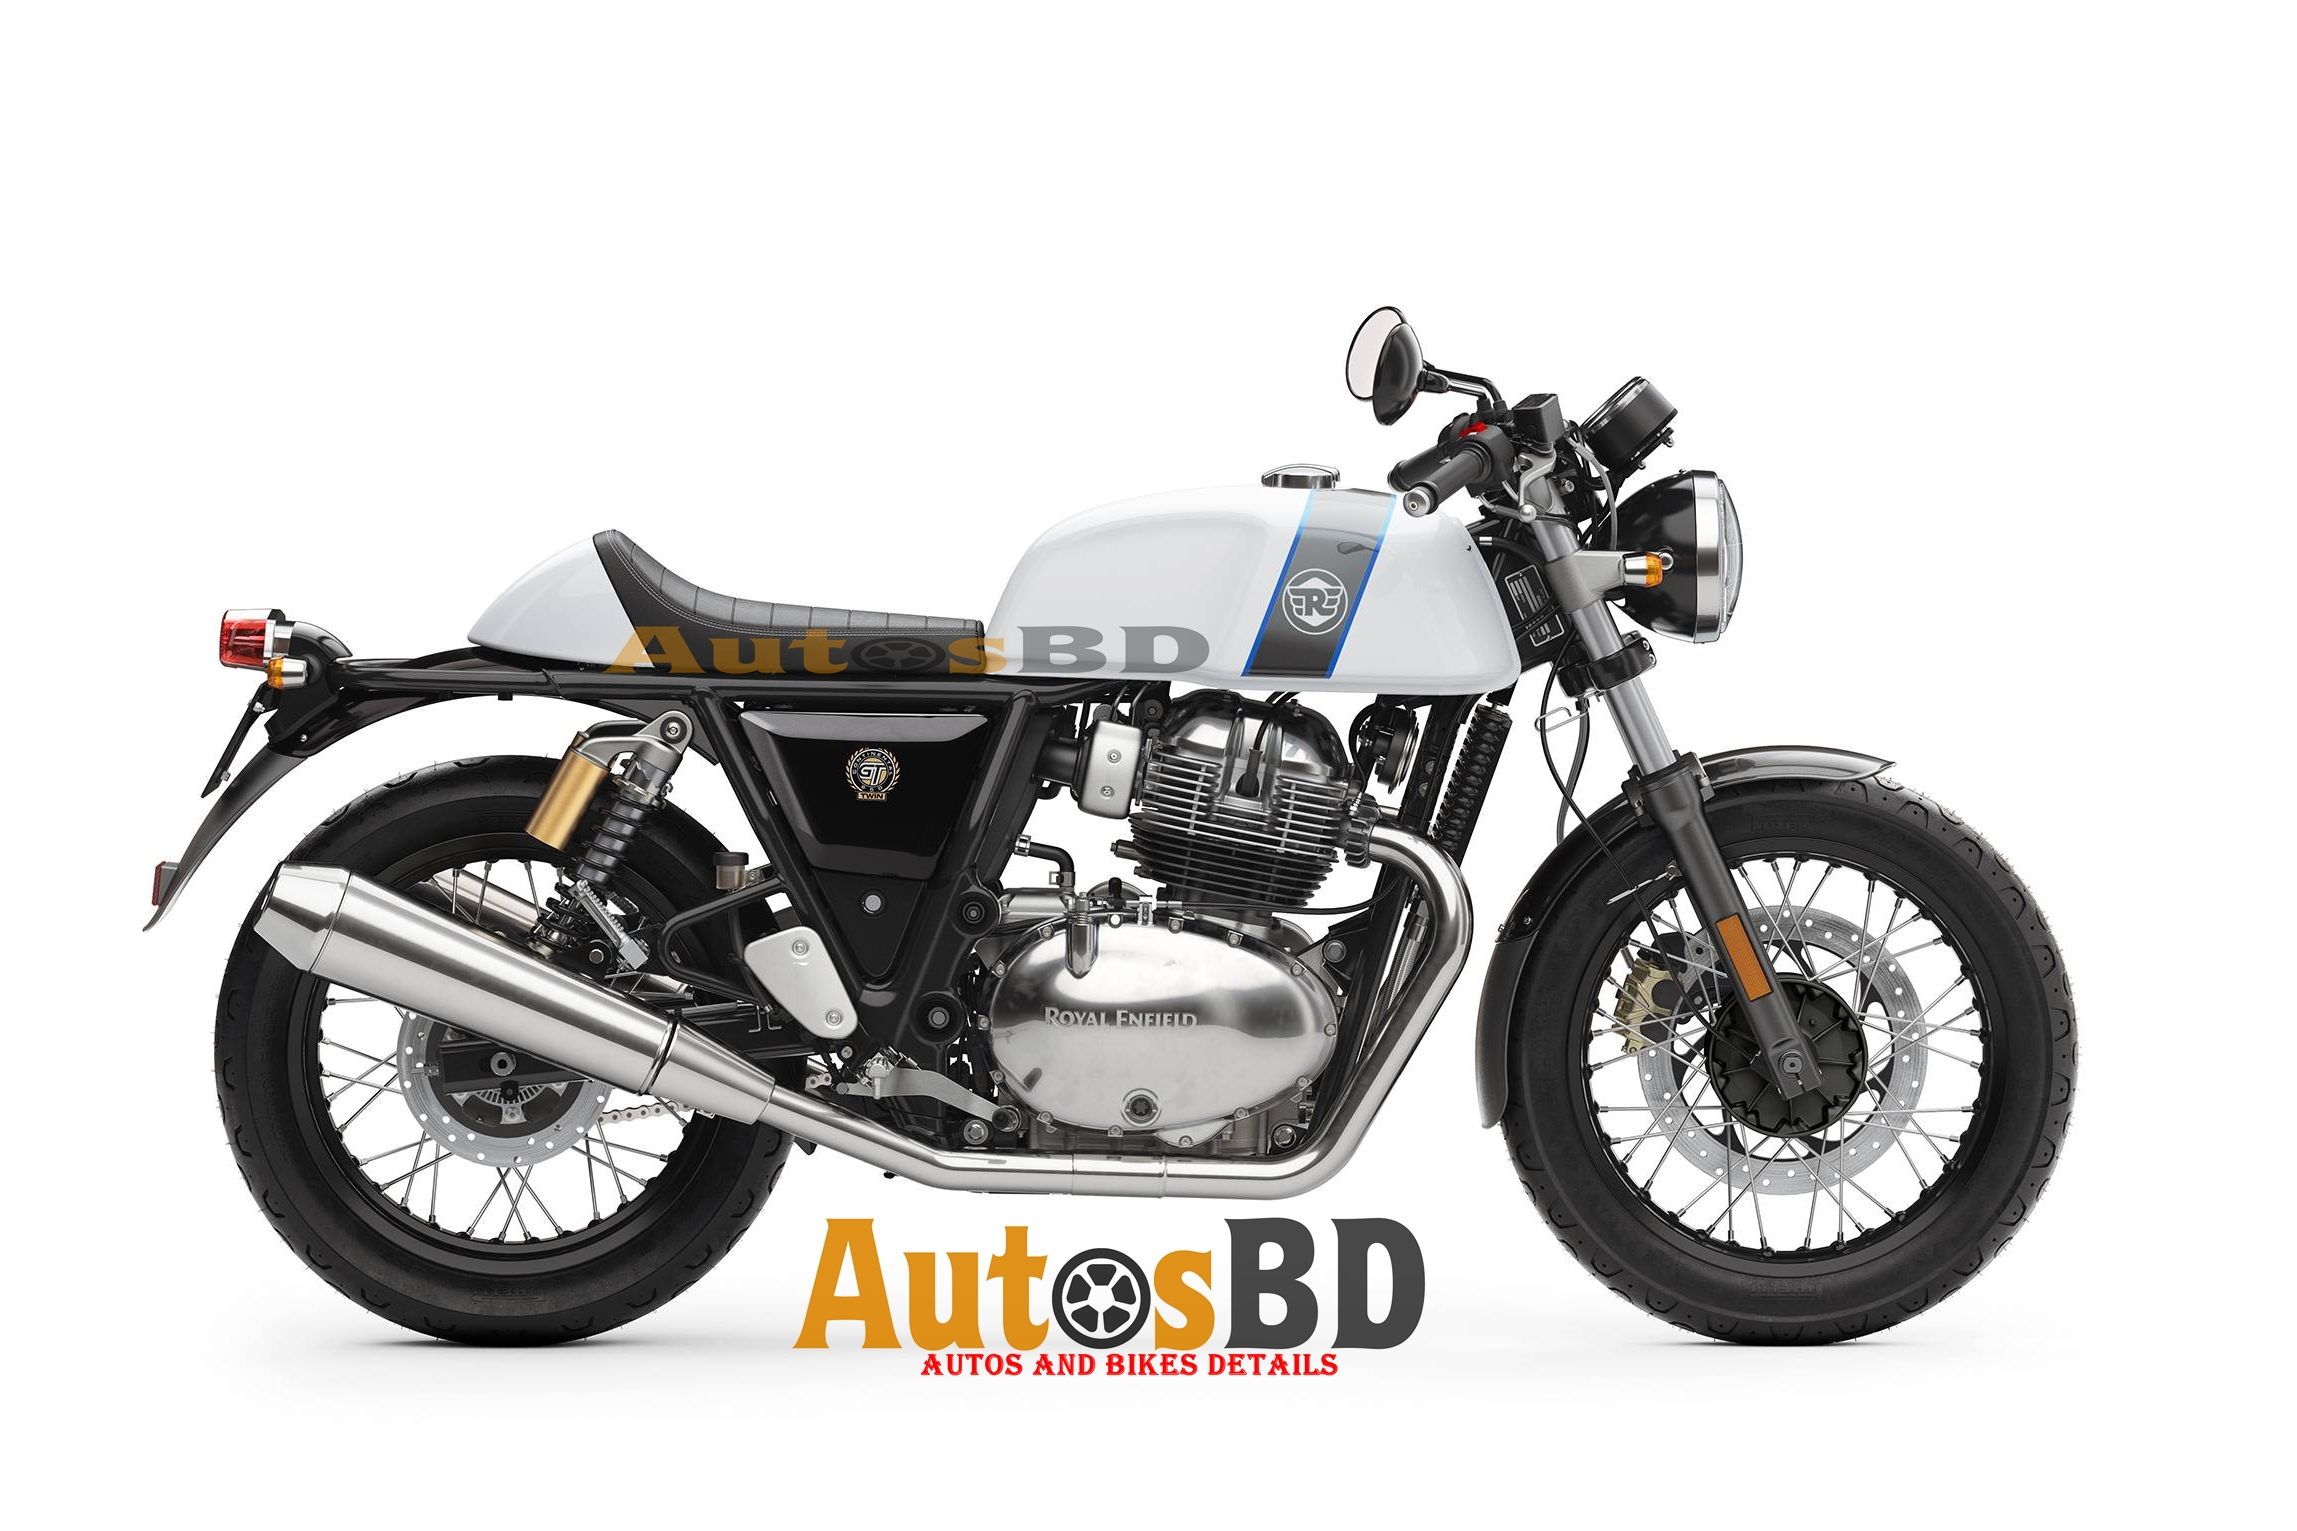 Royal Enfield Continental GT 650 Price in India